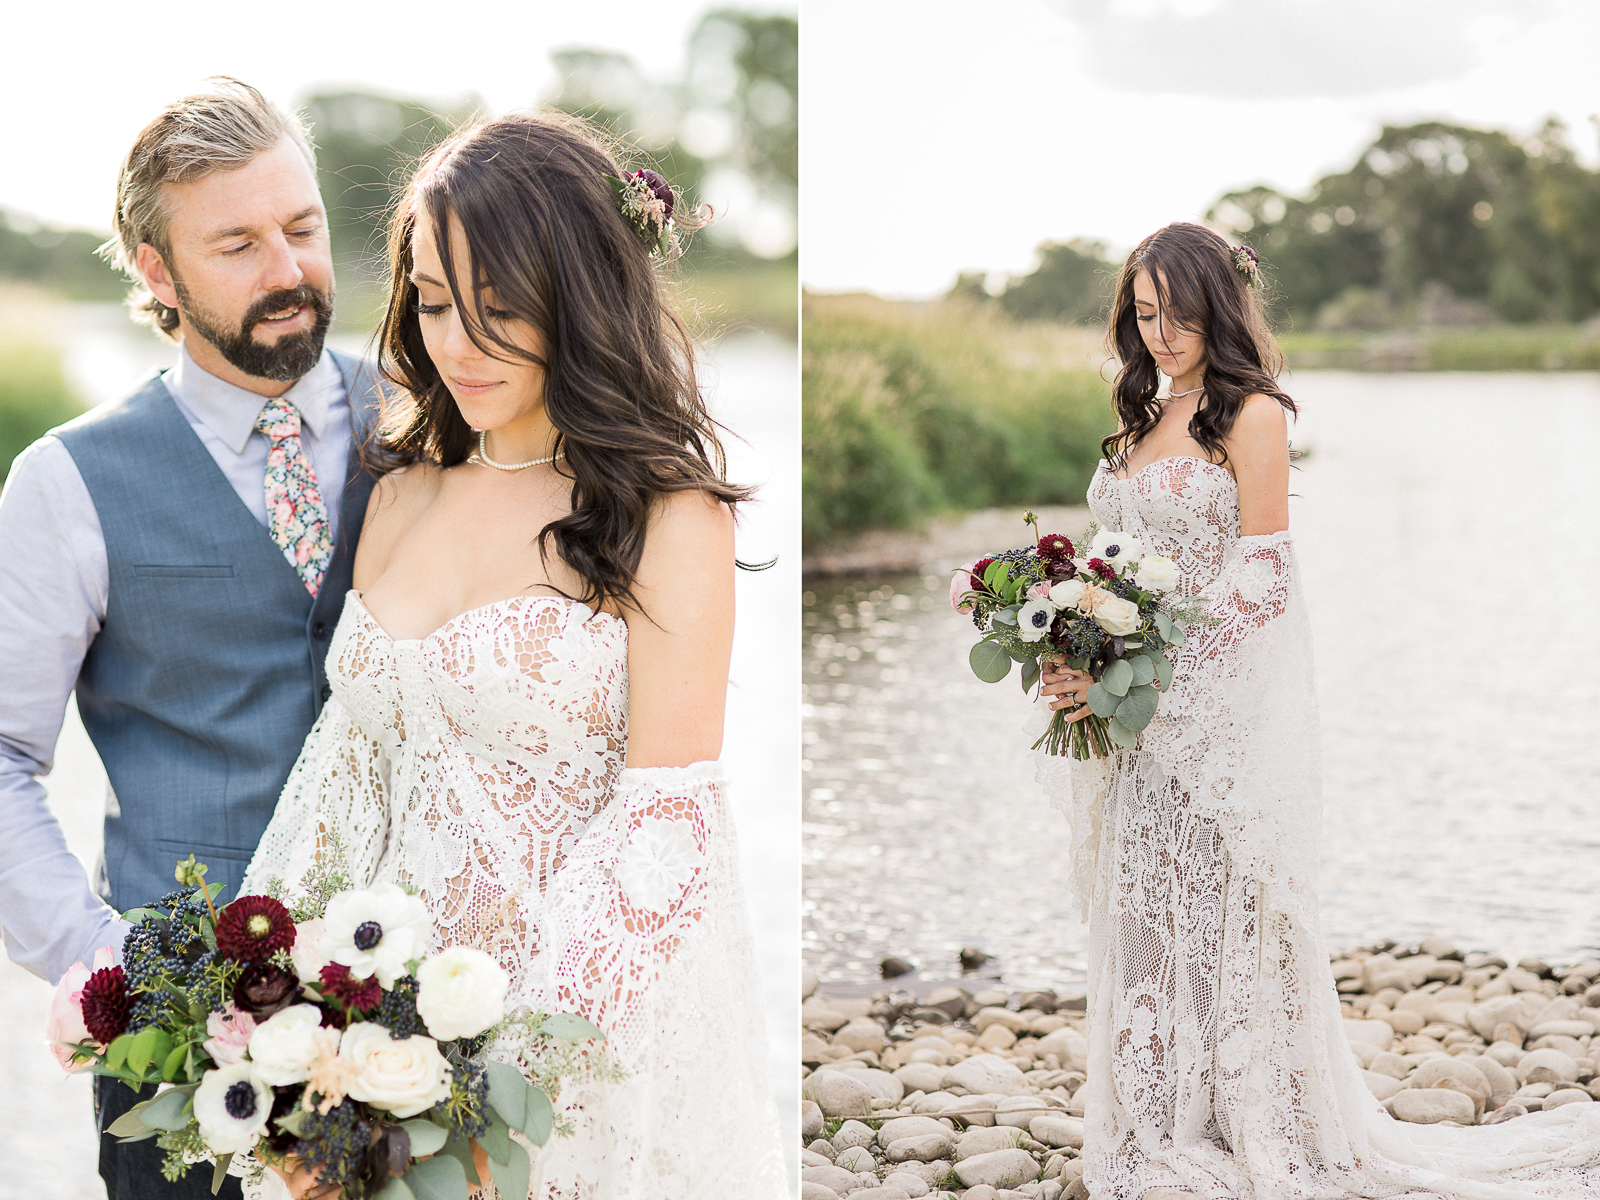 Boho Wedding Portraits by Megan Lee Photography